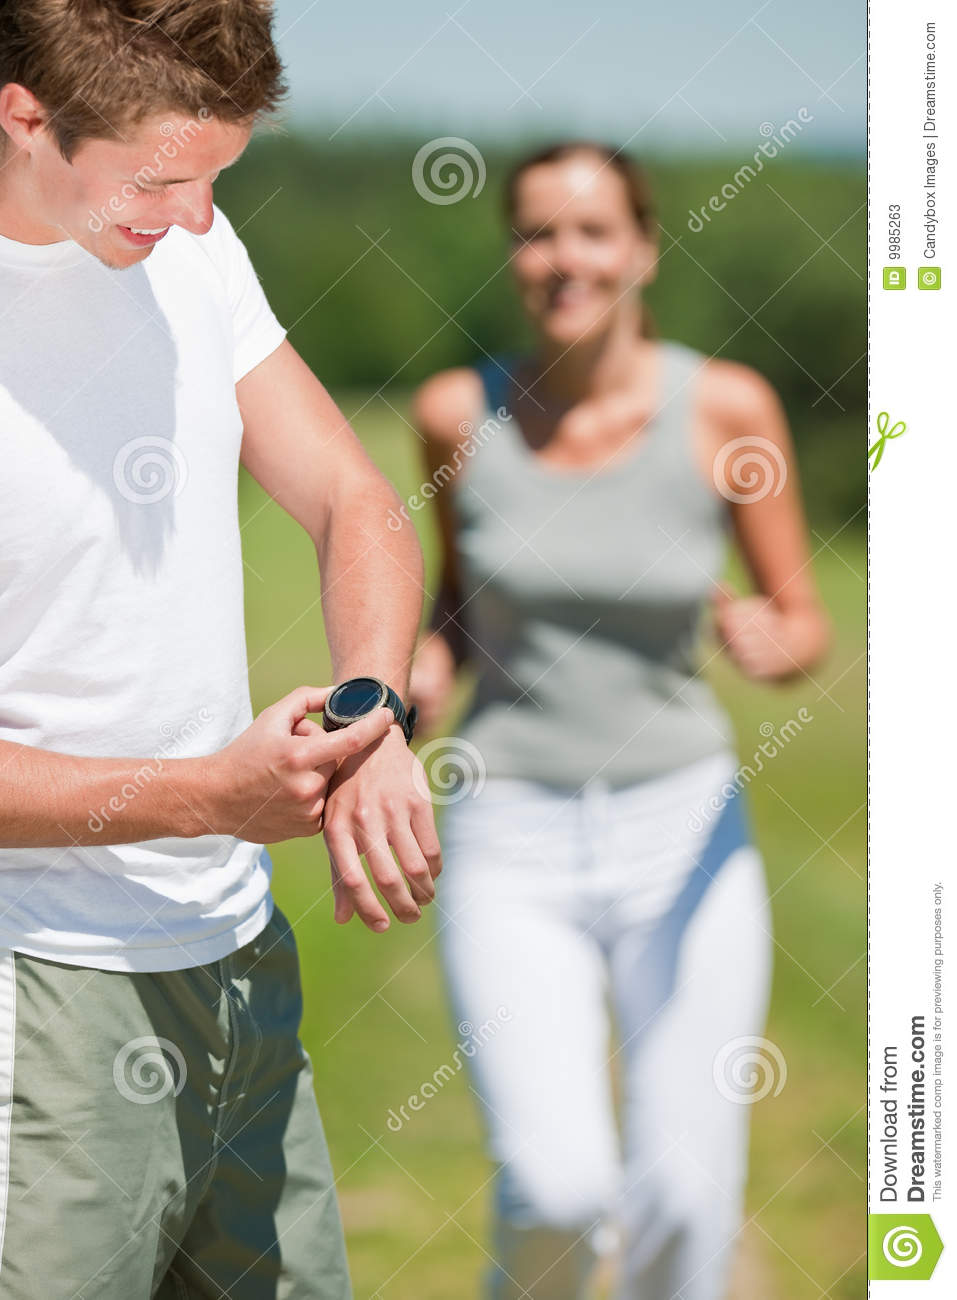 Summer - Young man with stopwatch measuring time